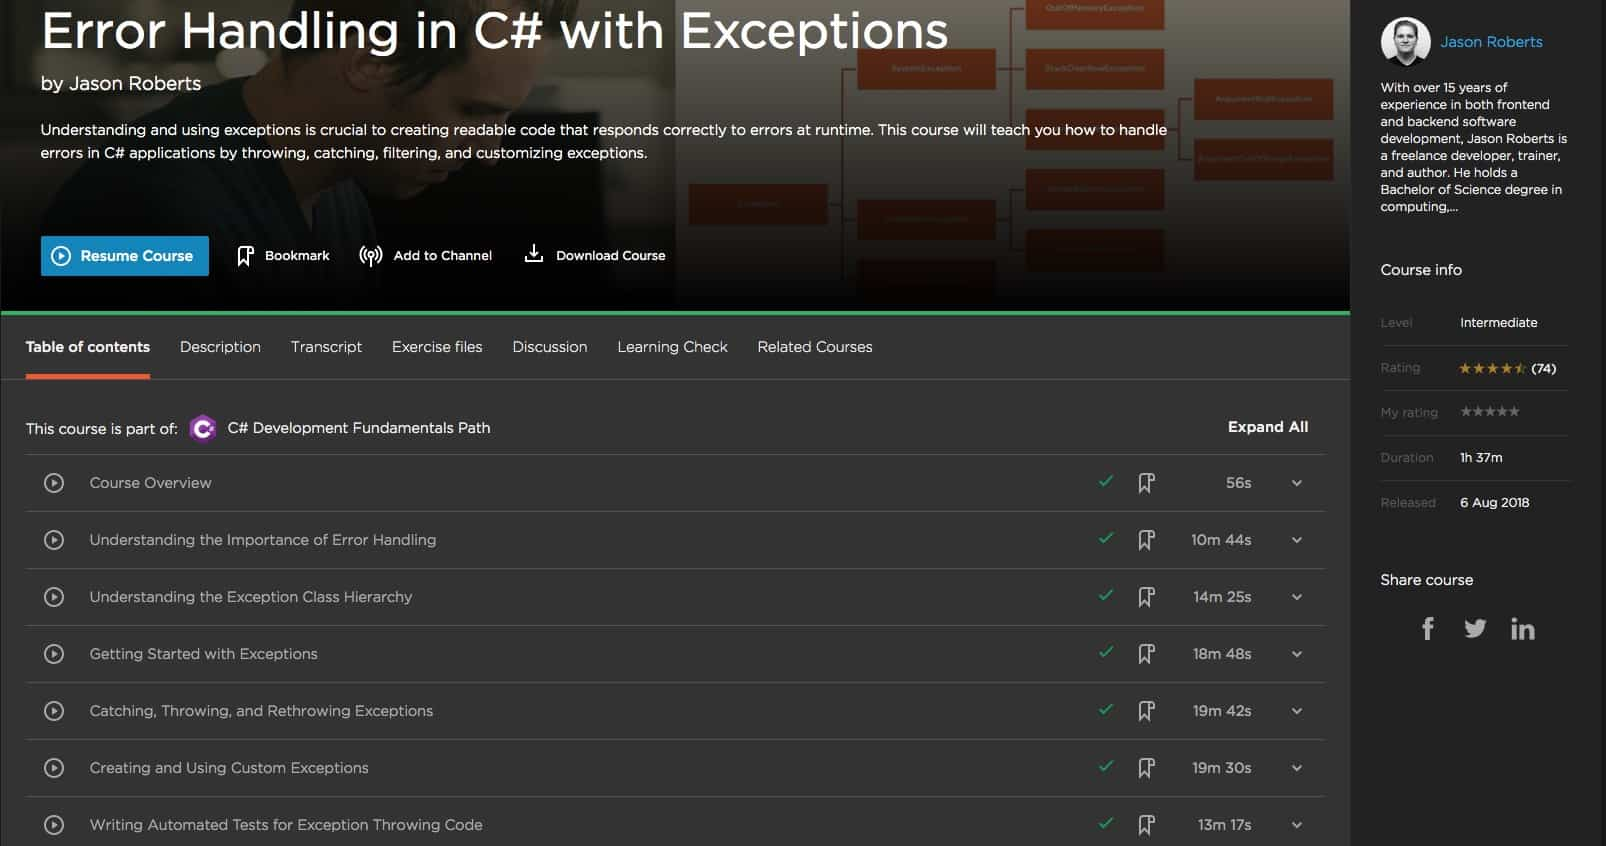 Error Handling in C-sharp with Exceptions